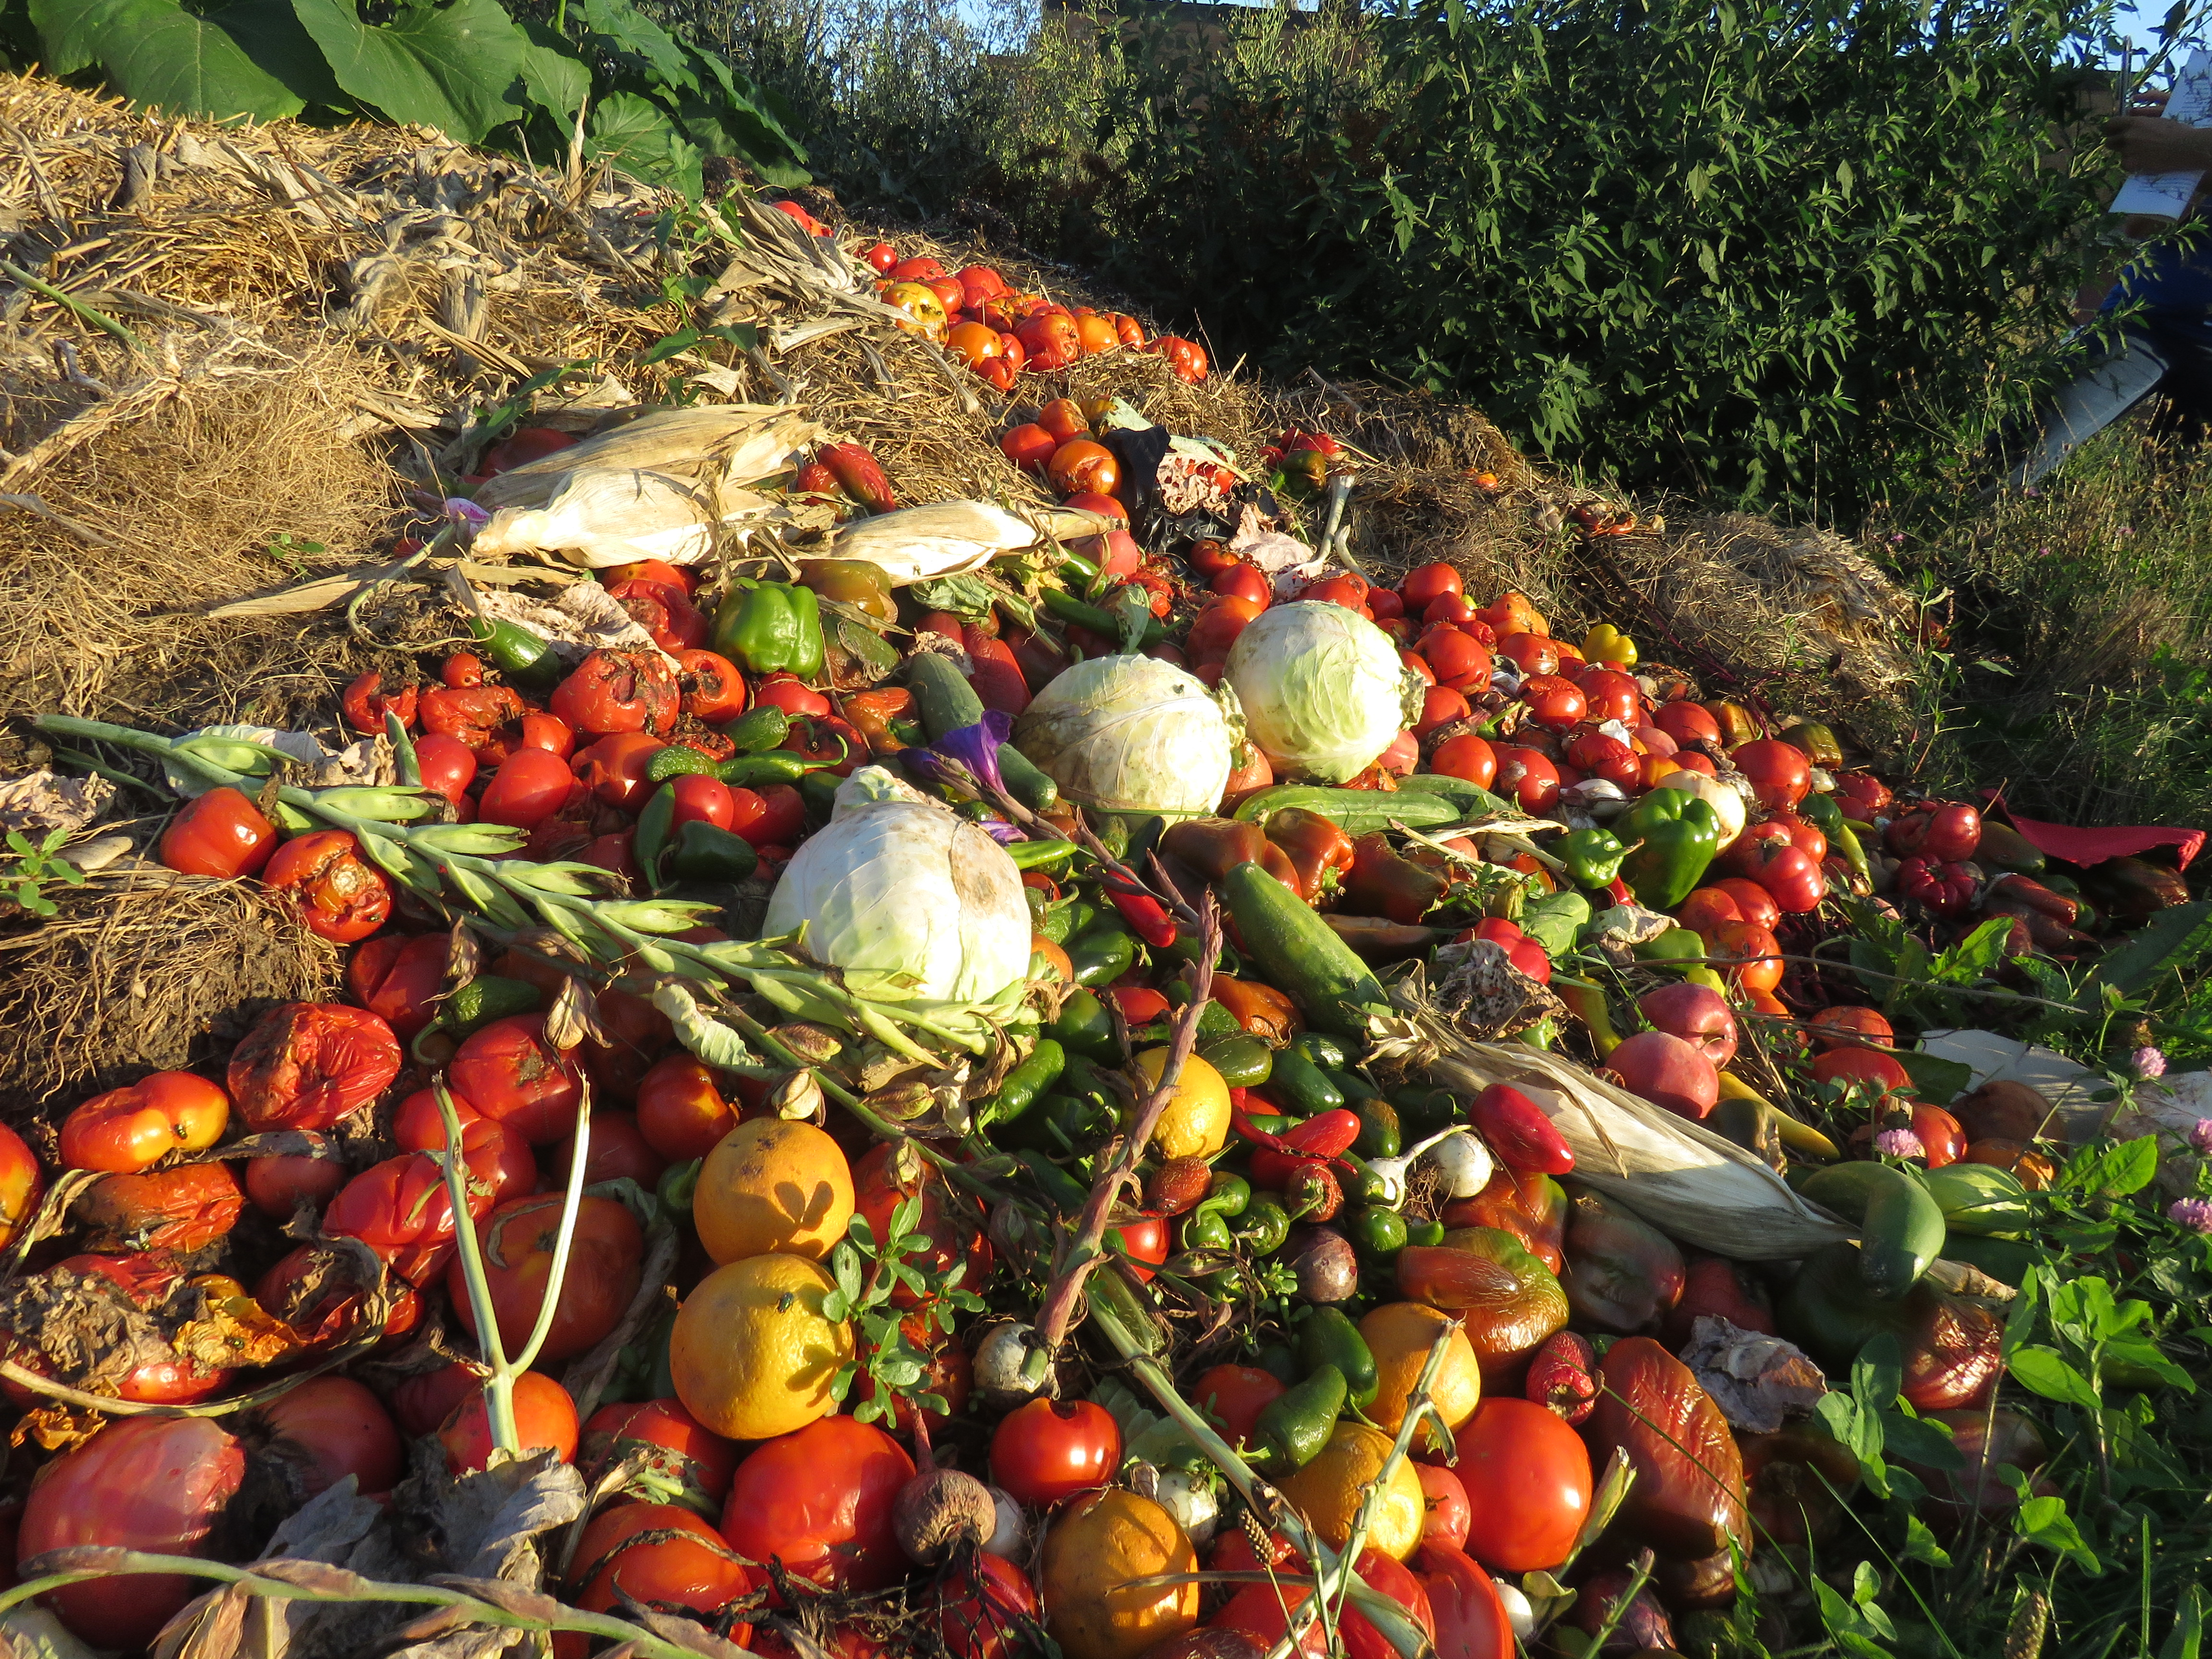 A heap of crops containing tomatoes, cabbage, peppers, corn, cucumbers are gathered on a pile of hay.